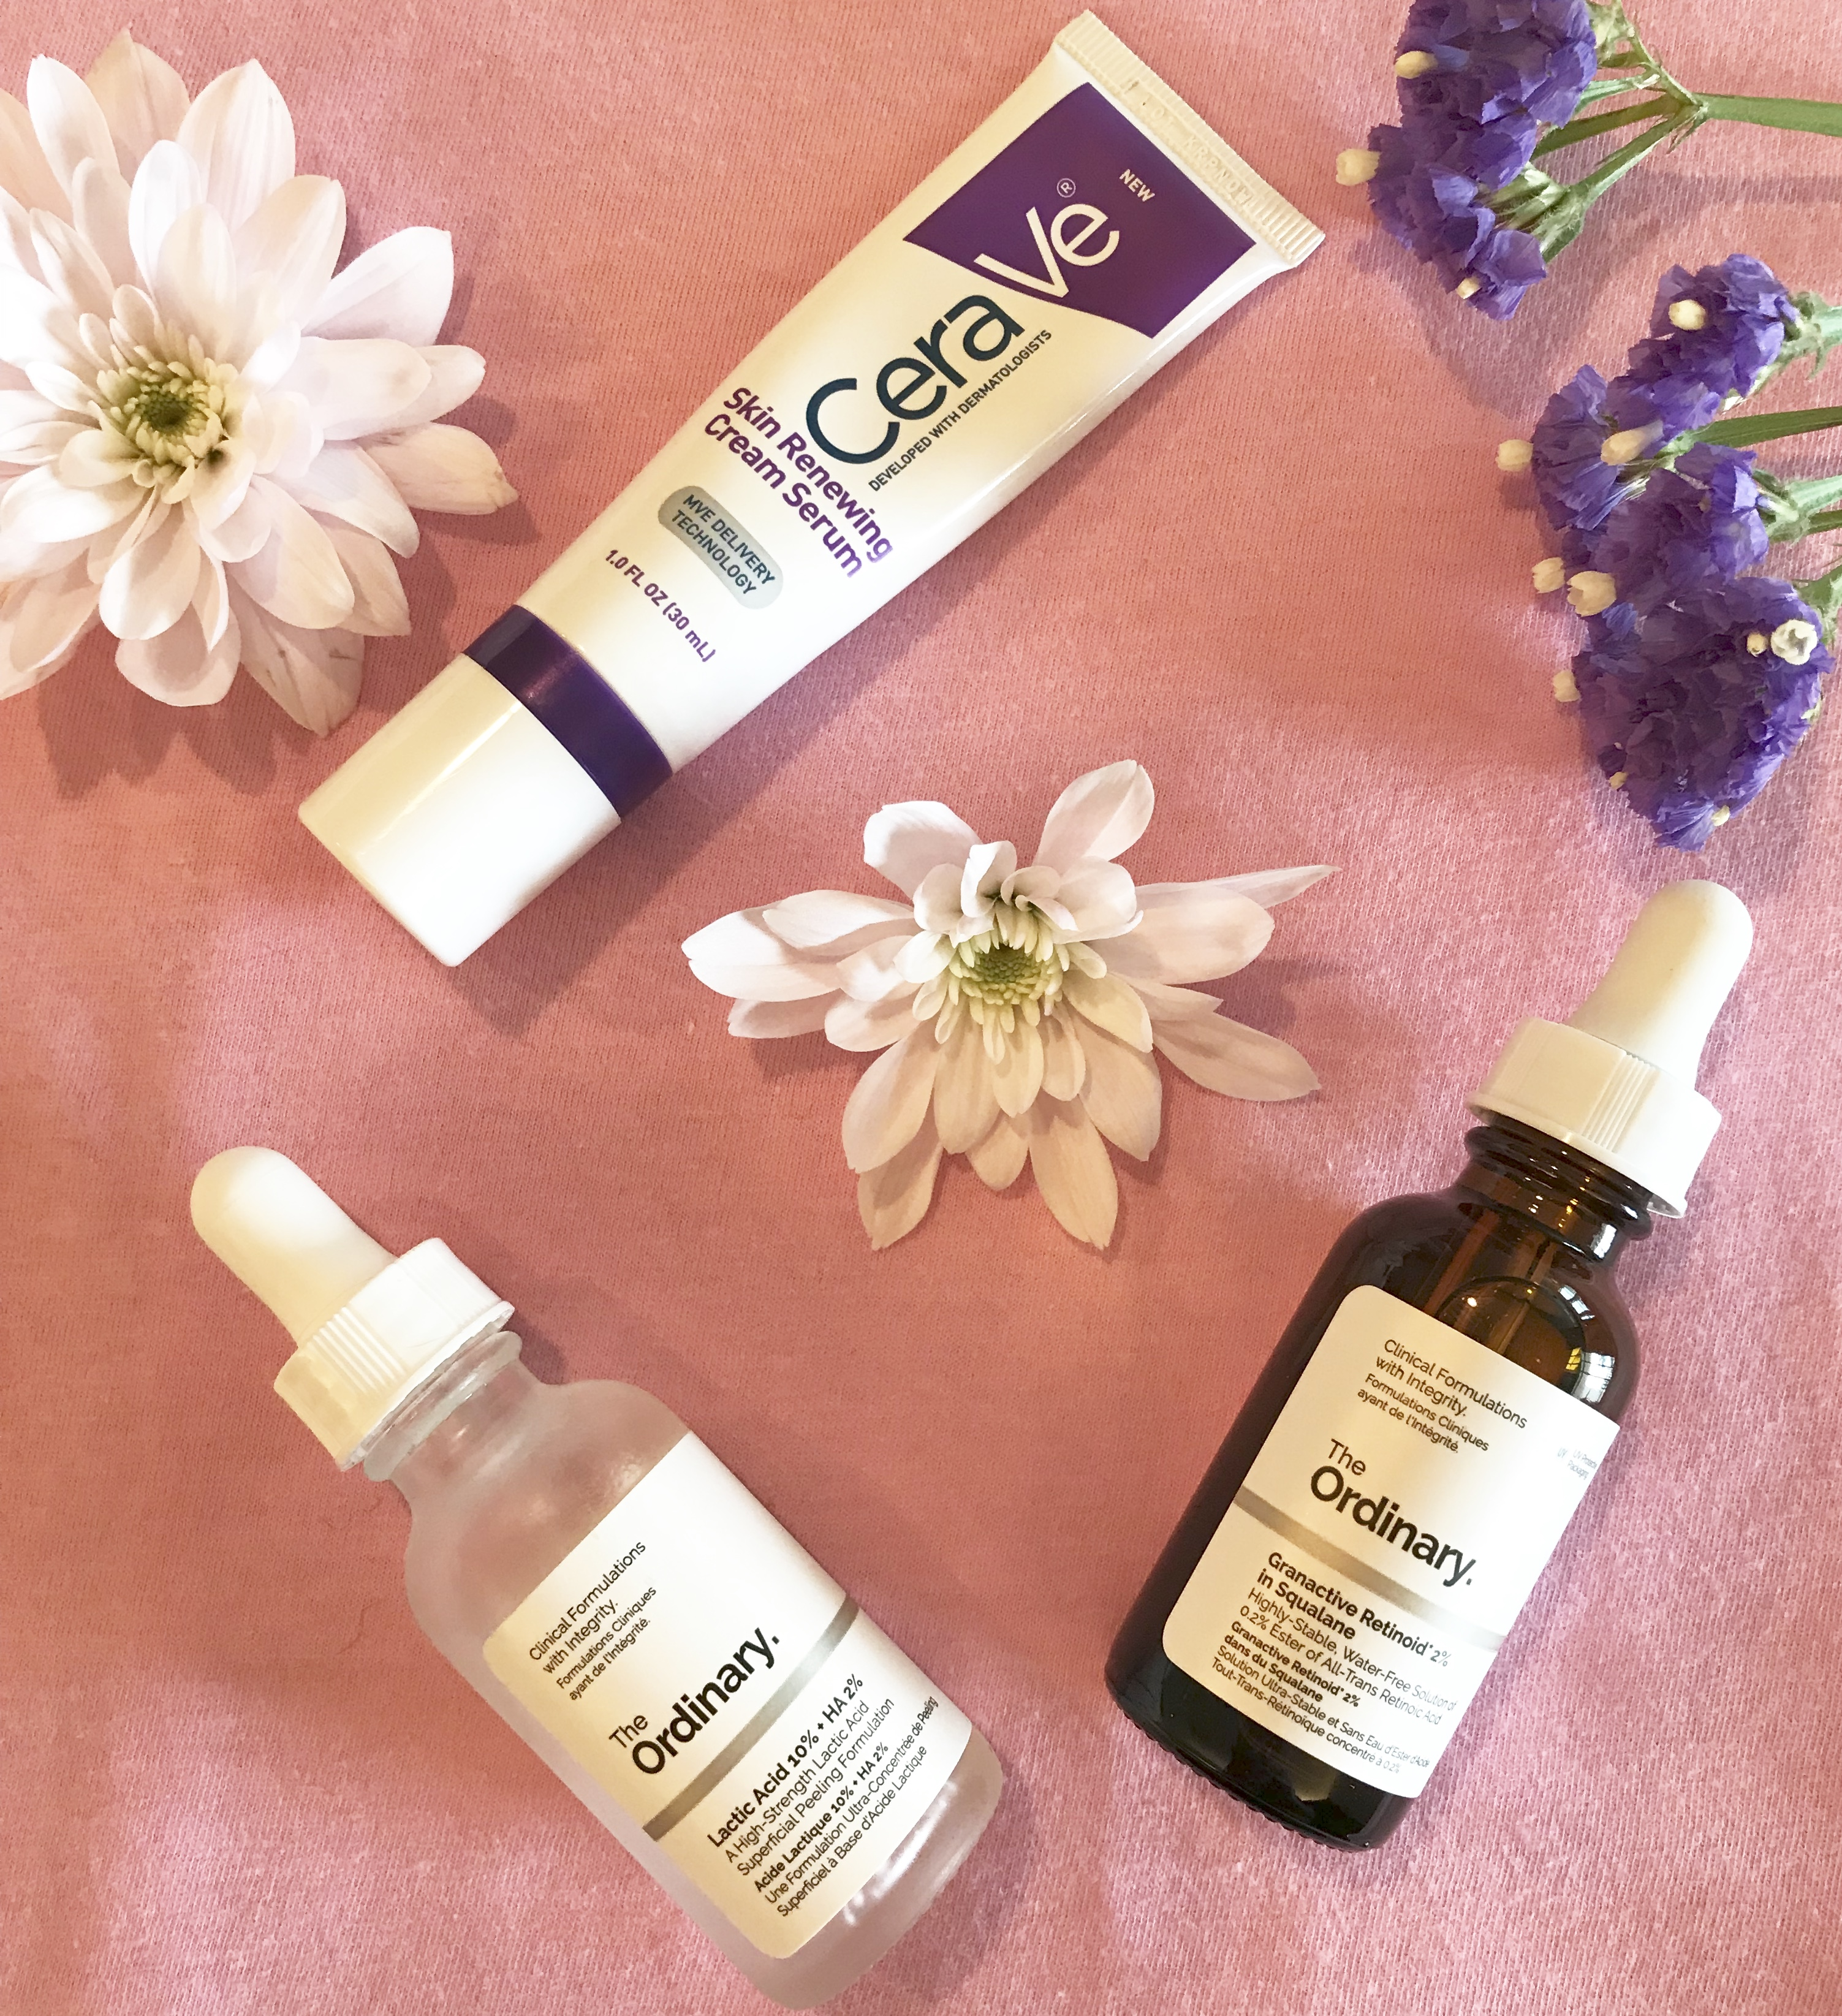 anti aging, anti aging skincare, skincare routine, retinol, retinoid, aha, bha, alpha hydroxy acids, beta hydroxy acids, lactic acid, lactic acid skincare, mens skincare, mens skincare routine, facial products, anti aging products, chemical acids, chemical peels, beauty, beauty blogger, beauty blog,